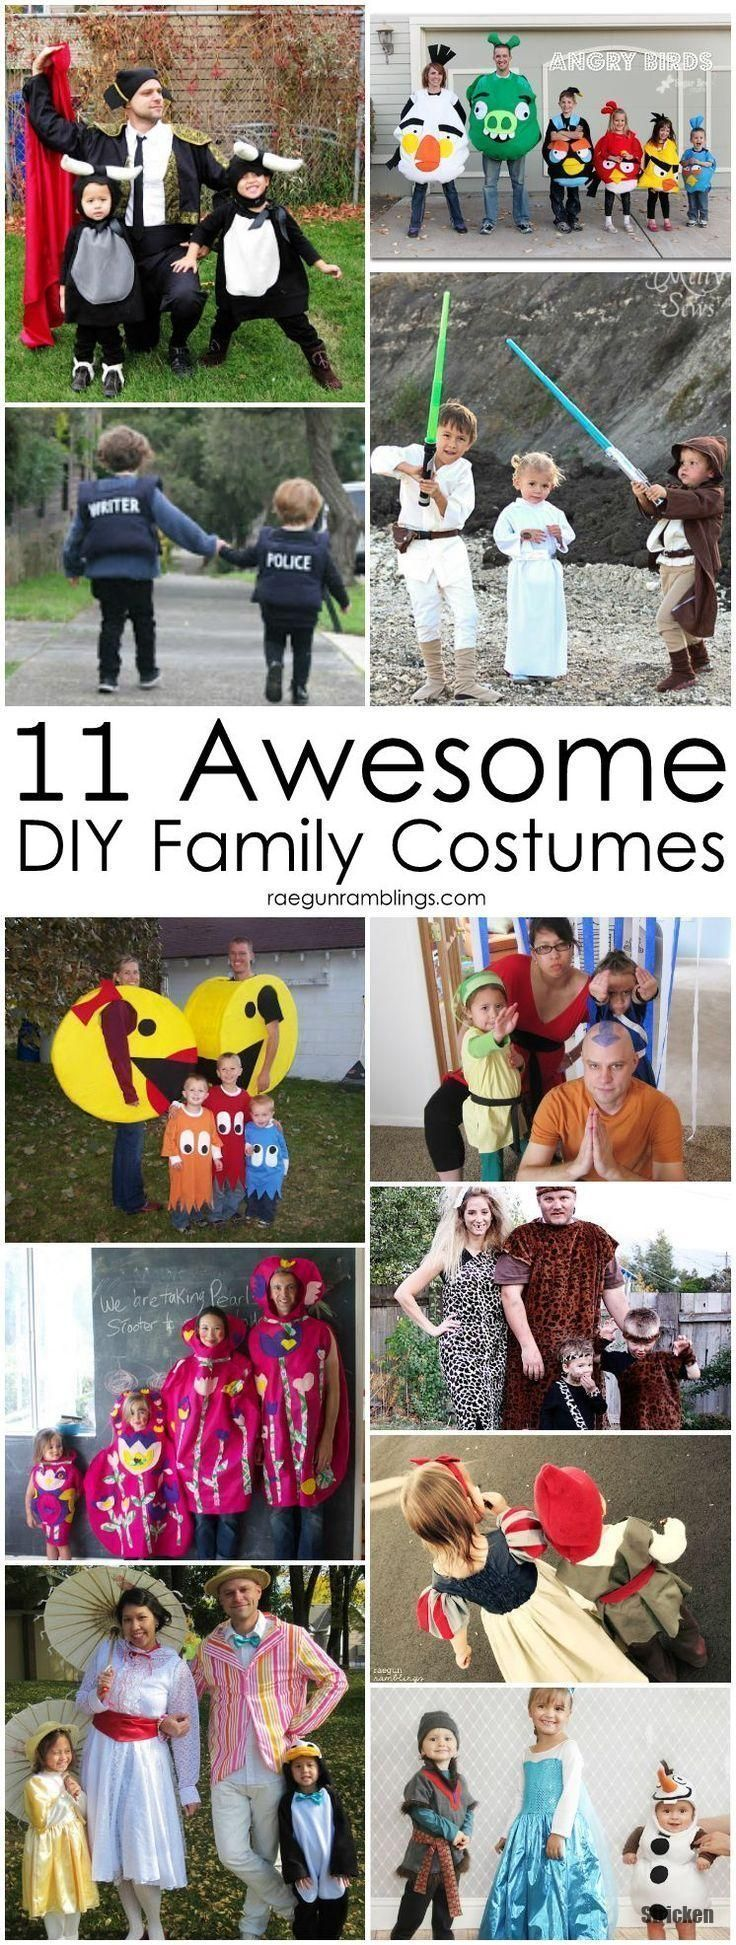 Stricken Family Costume Ideas  SOS Sewing Fails Stricken Family Costume Ideas  SOS Sewing Fails Stricken Family Costume Ideas  SOS Sewing Fails Stricken Family Costume Id...